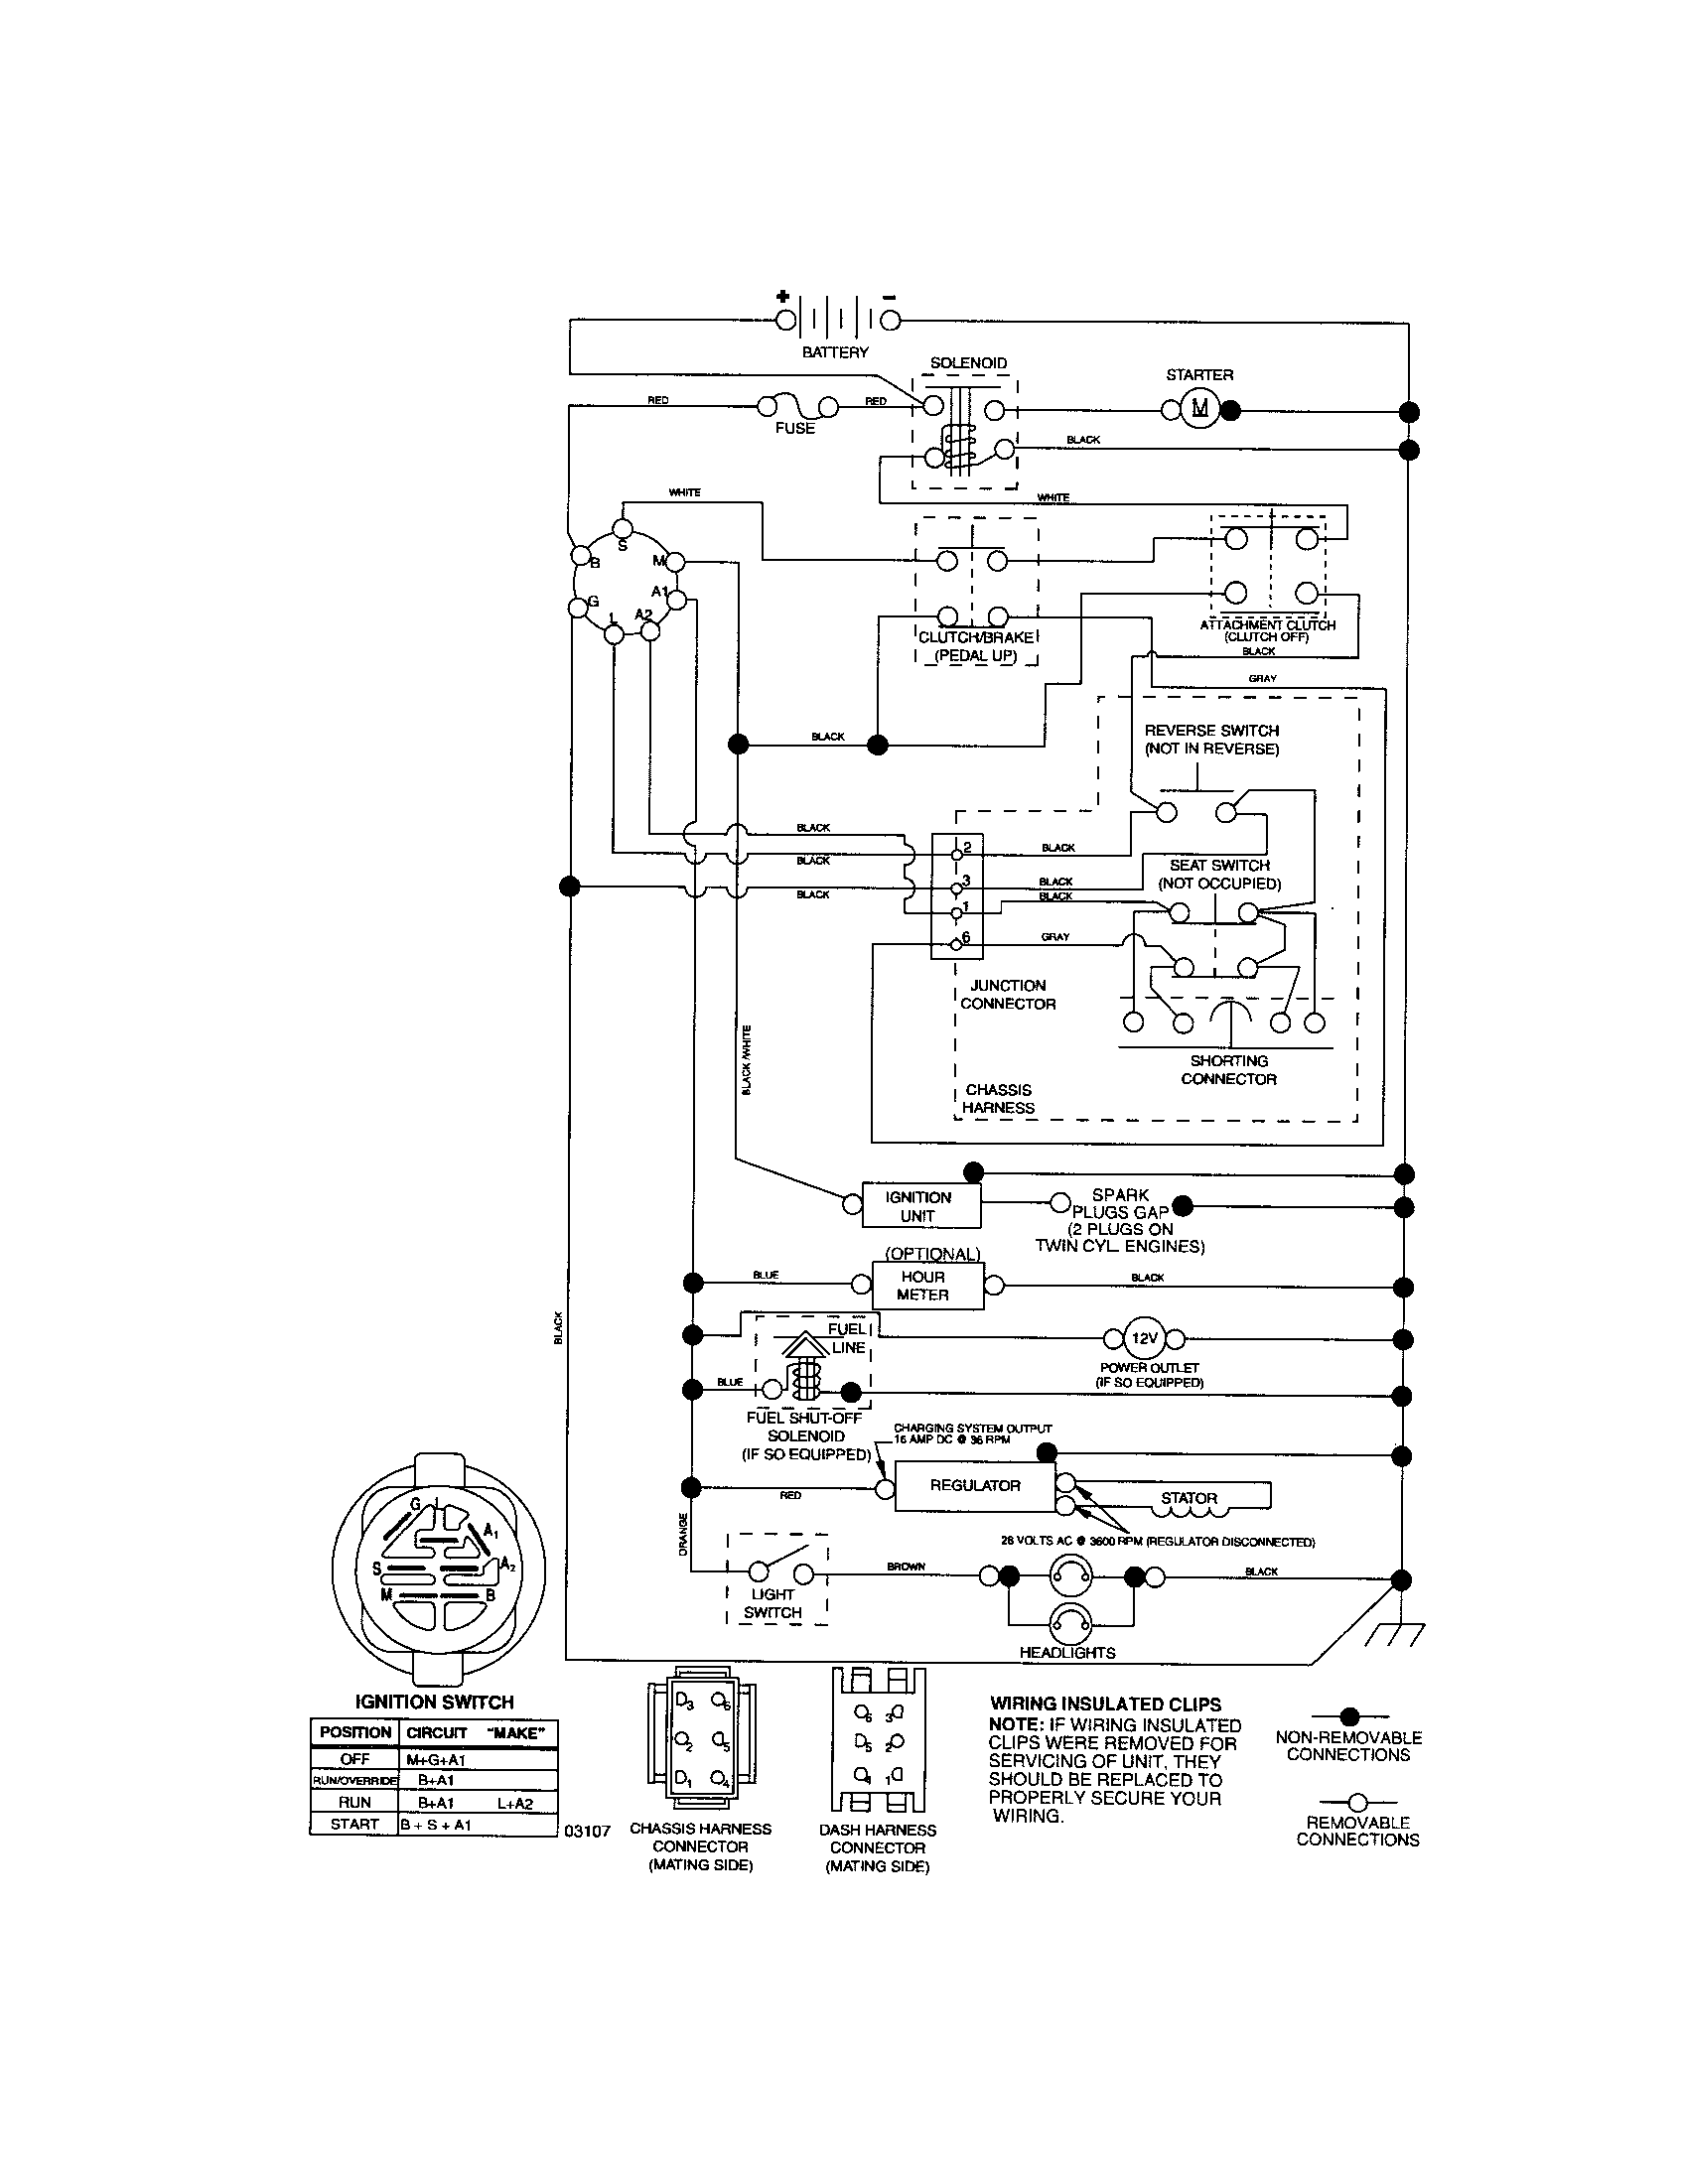 Craftsman Electric Motor Wiring Trusted Schematic Diagrams Dayton Motors Diagram Engine Schematics U2022 Rh Seniorlivinguniversity Co 3 Phase